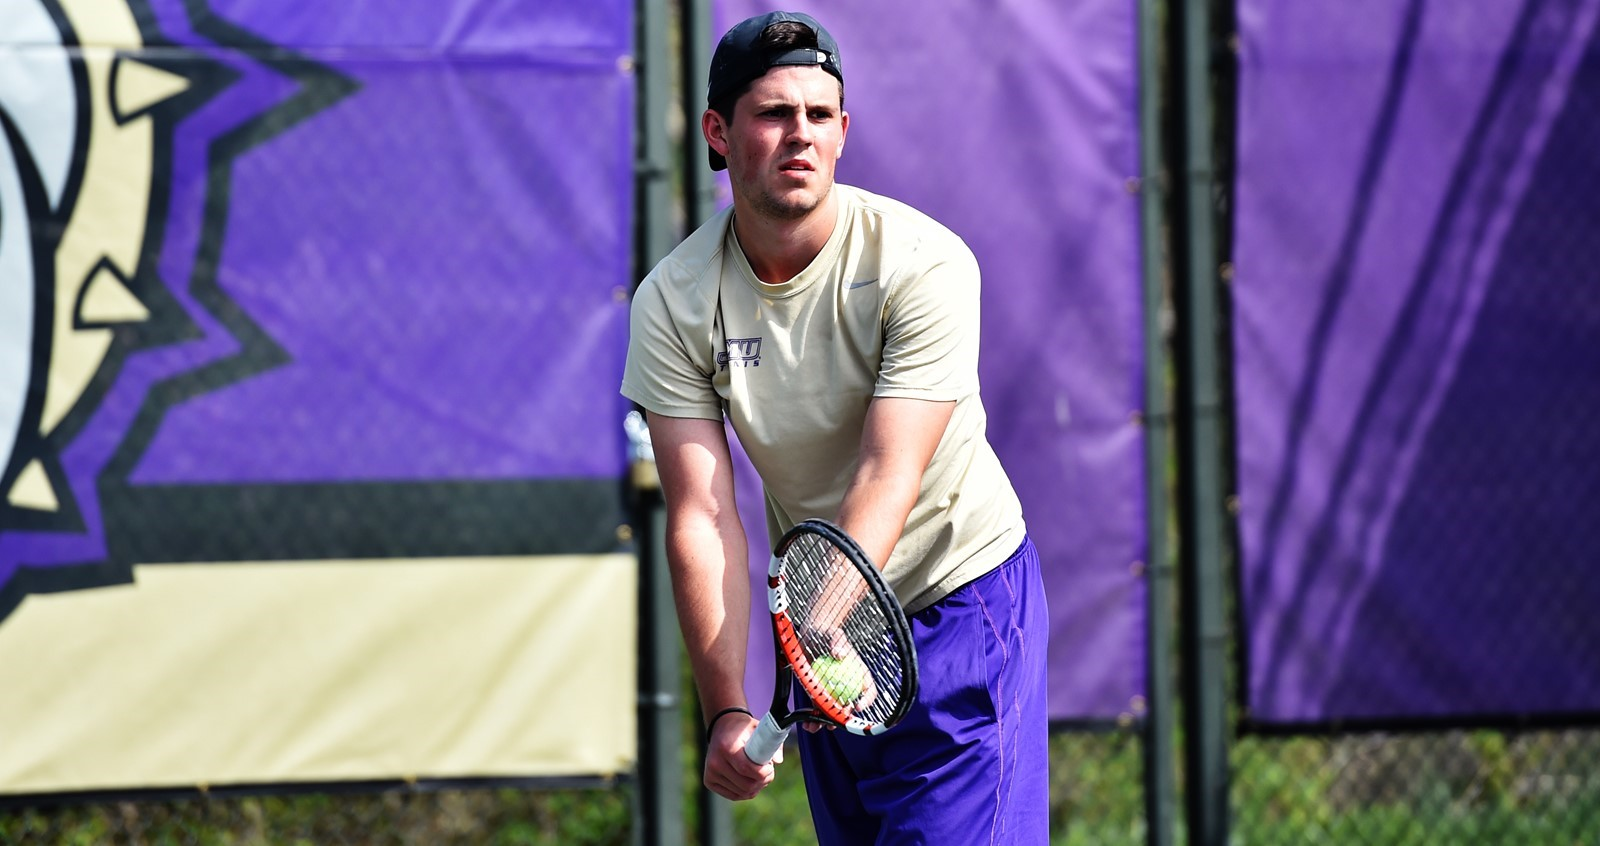 Men's Tennis: JMU Posts Solid Day Two at Elon Fall Invitational